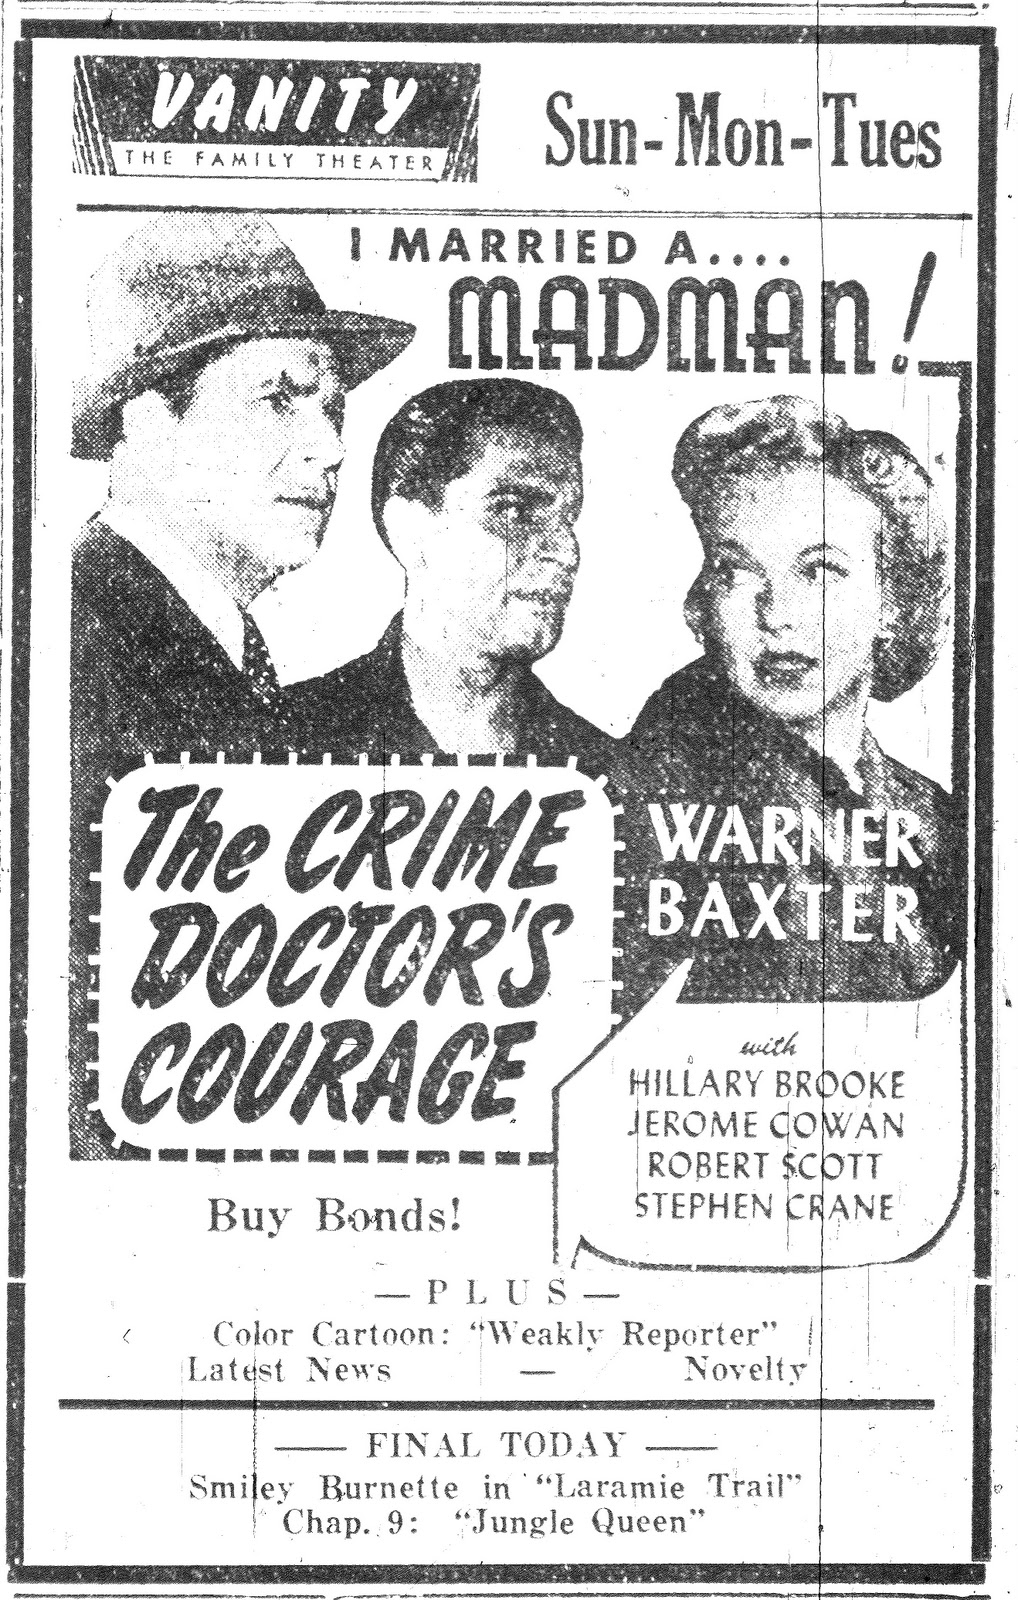 Warner Baxter, Hillary Brooke, and Anthony Caruso in The Crime Doctor's Courage (1945)